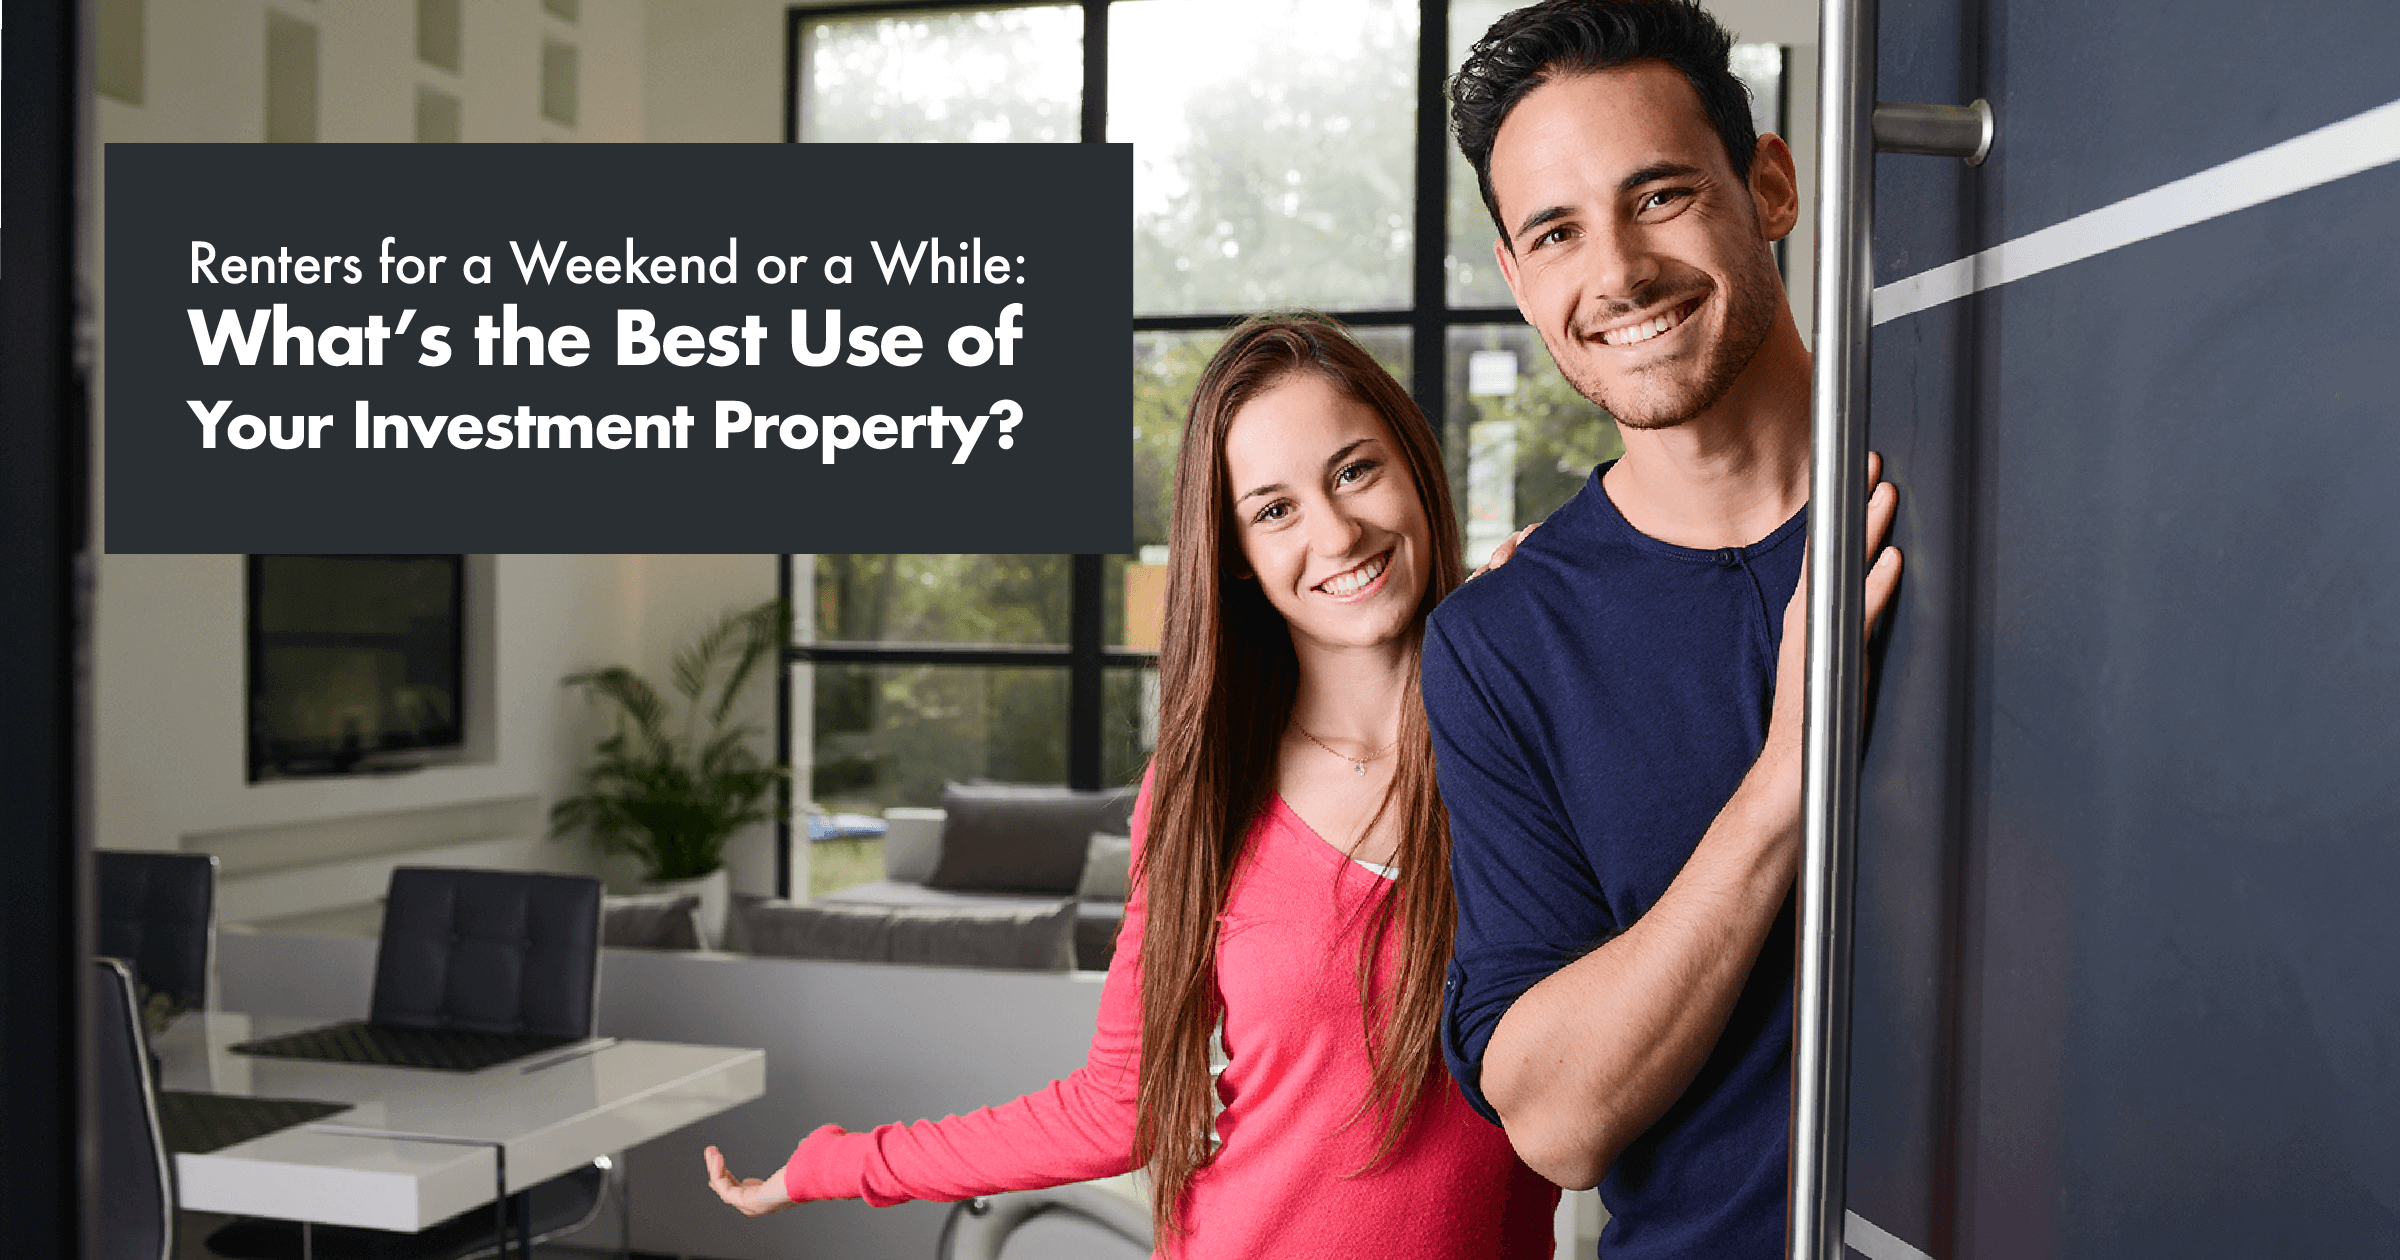 Renters for a Weekend or a While: What's the Best Use of Your Flagstaff Investment Property?